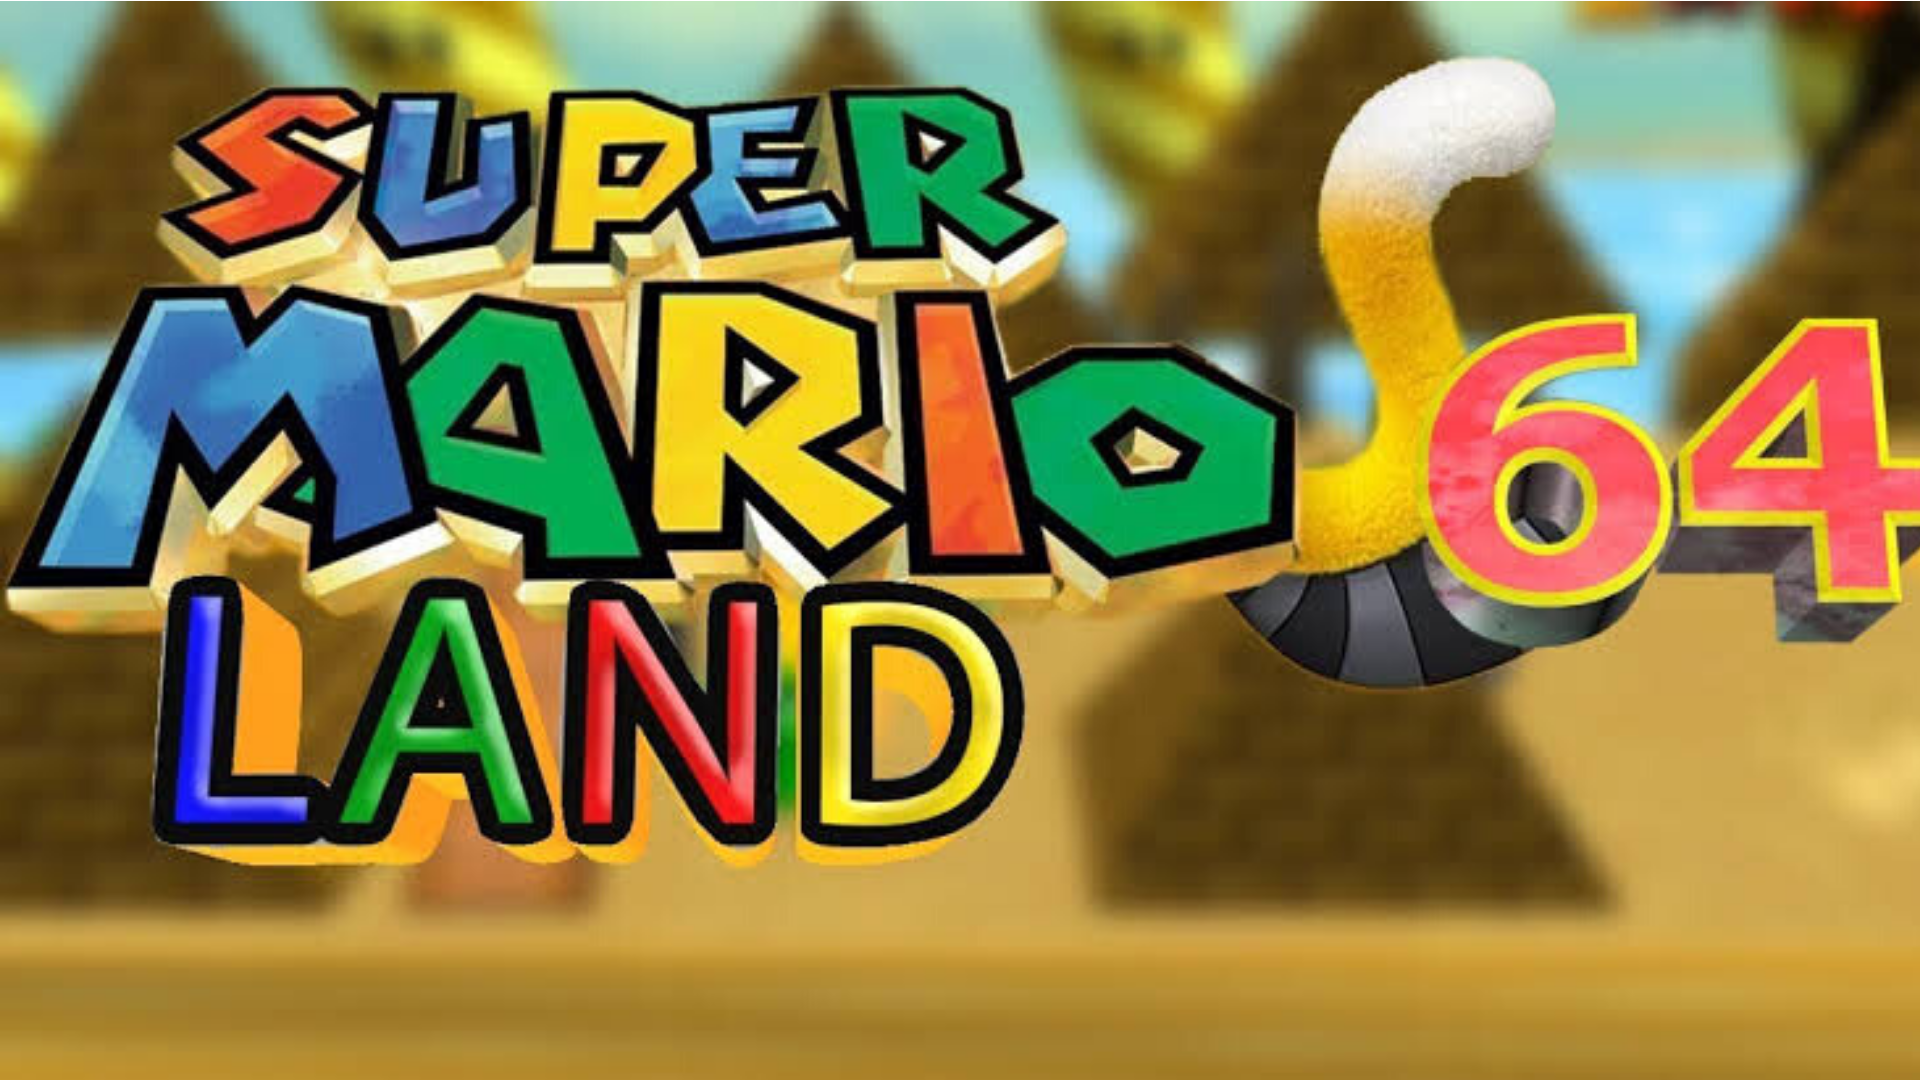 Super Mario 64 Land mode is Now available but there's a problem